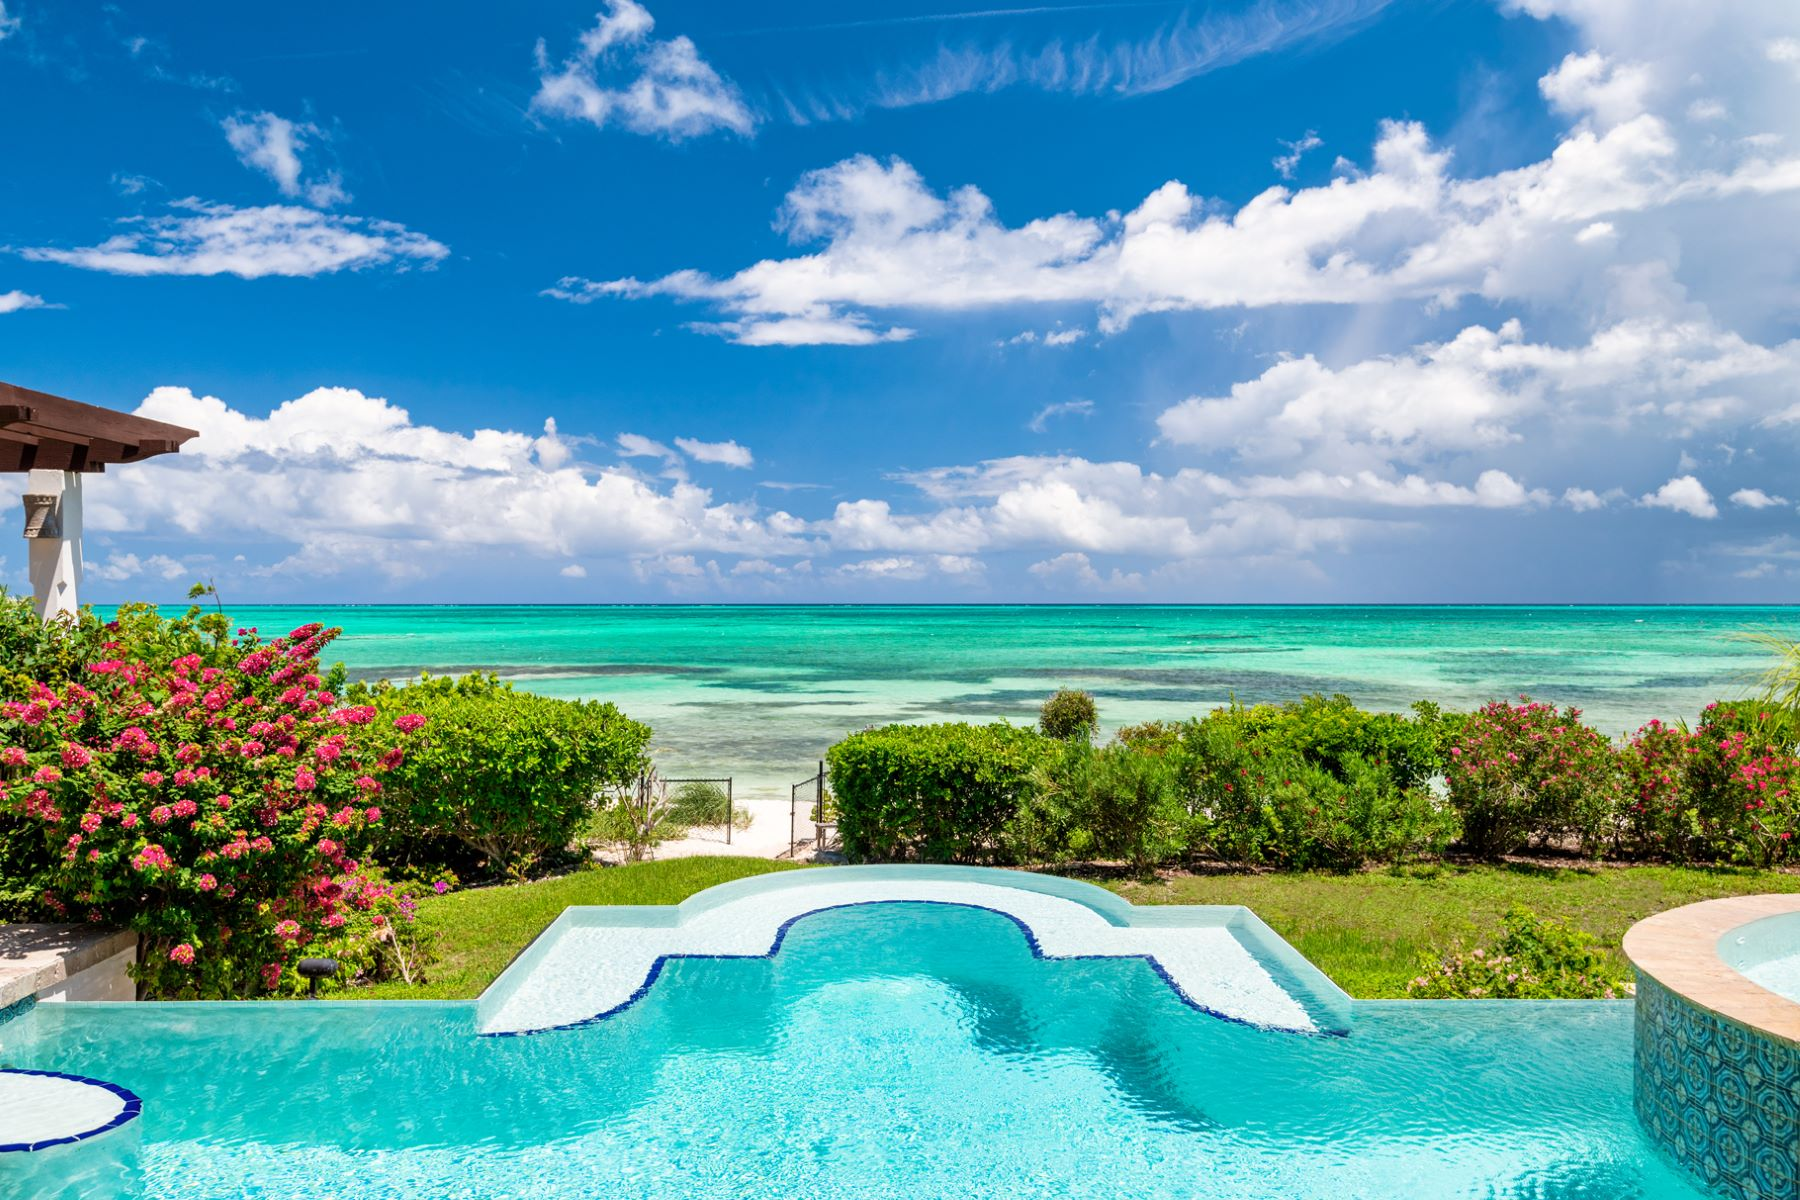 Single Family Home for Sale at Northbrae Thompson Cove, Providenciales Turks And Caicos Islands